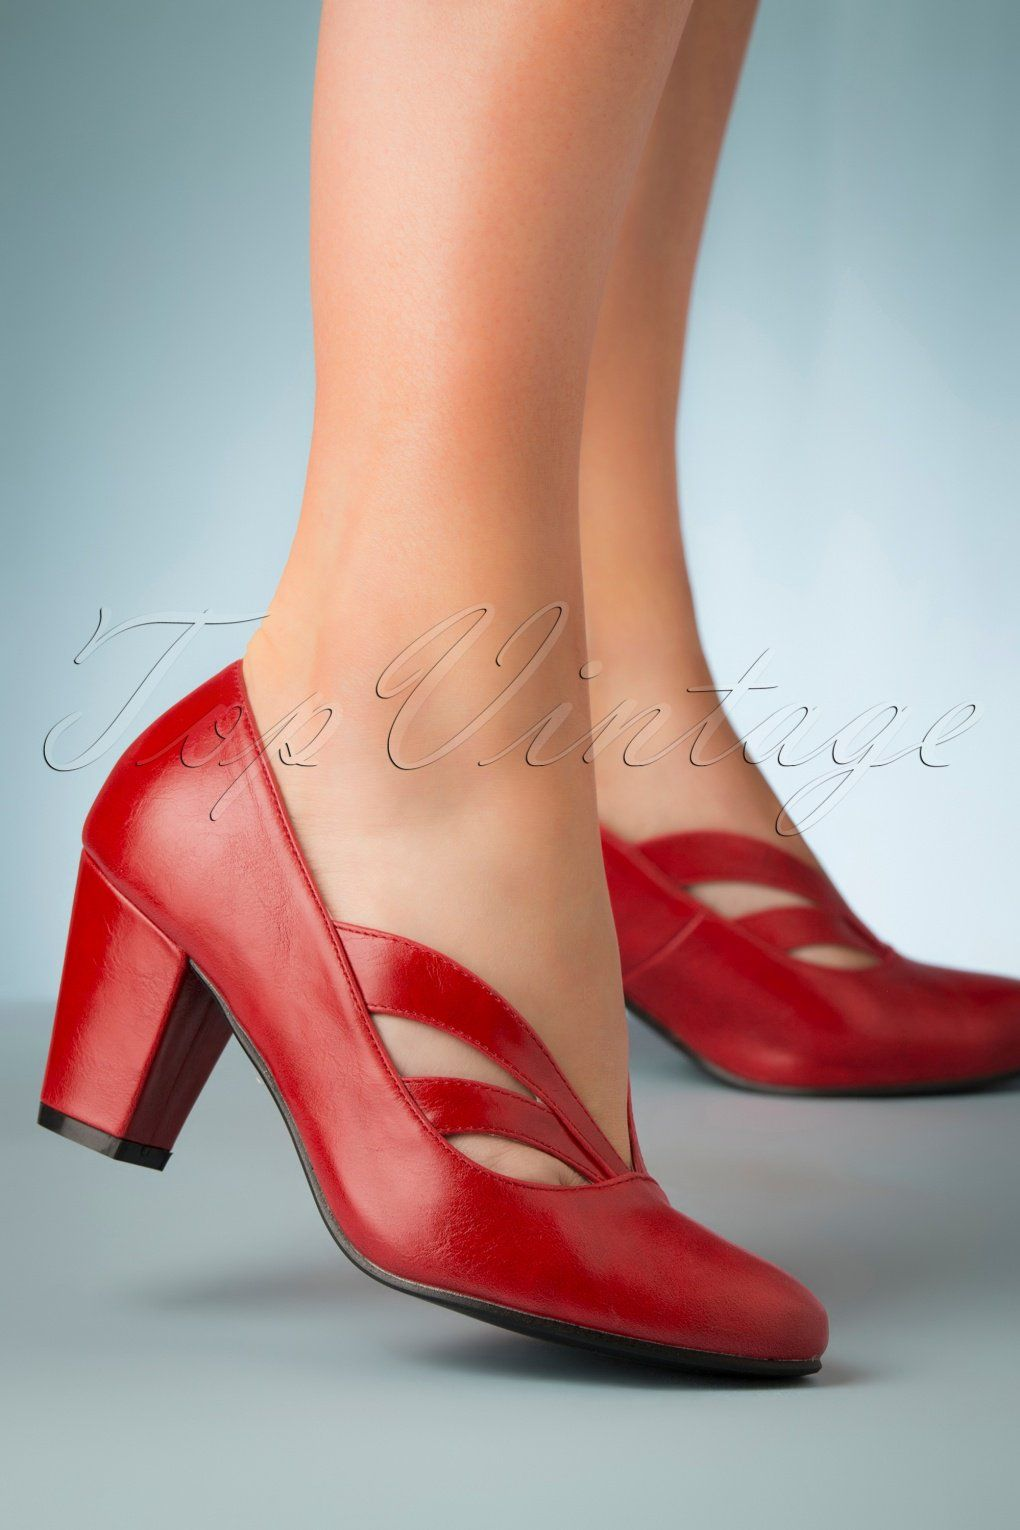 Vintage Shoes, Vintage Style Shoes